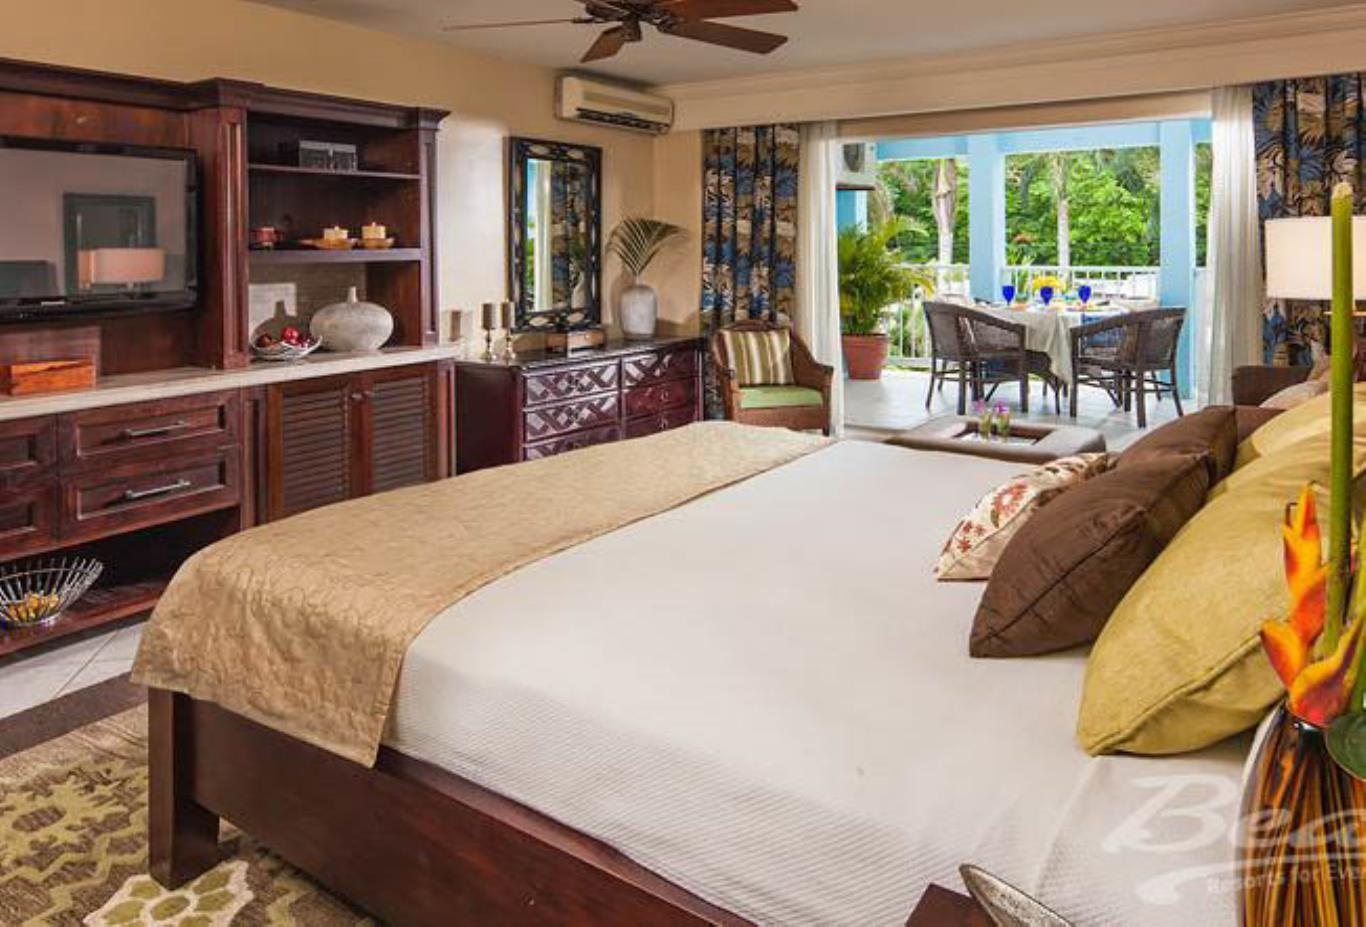 Caribbean Luxury Family Sized Room - TBFK,TBFD